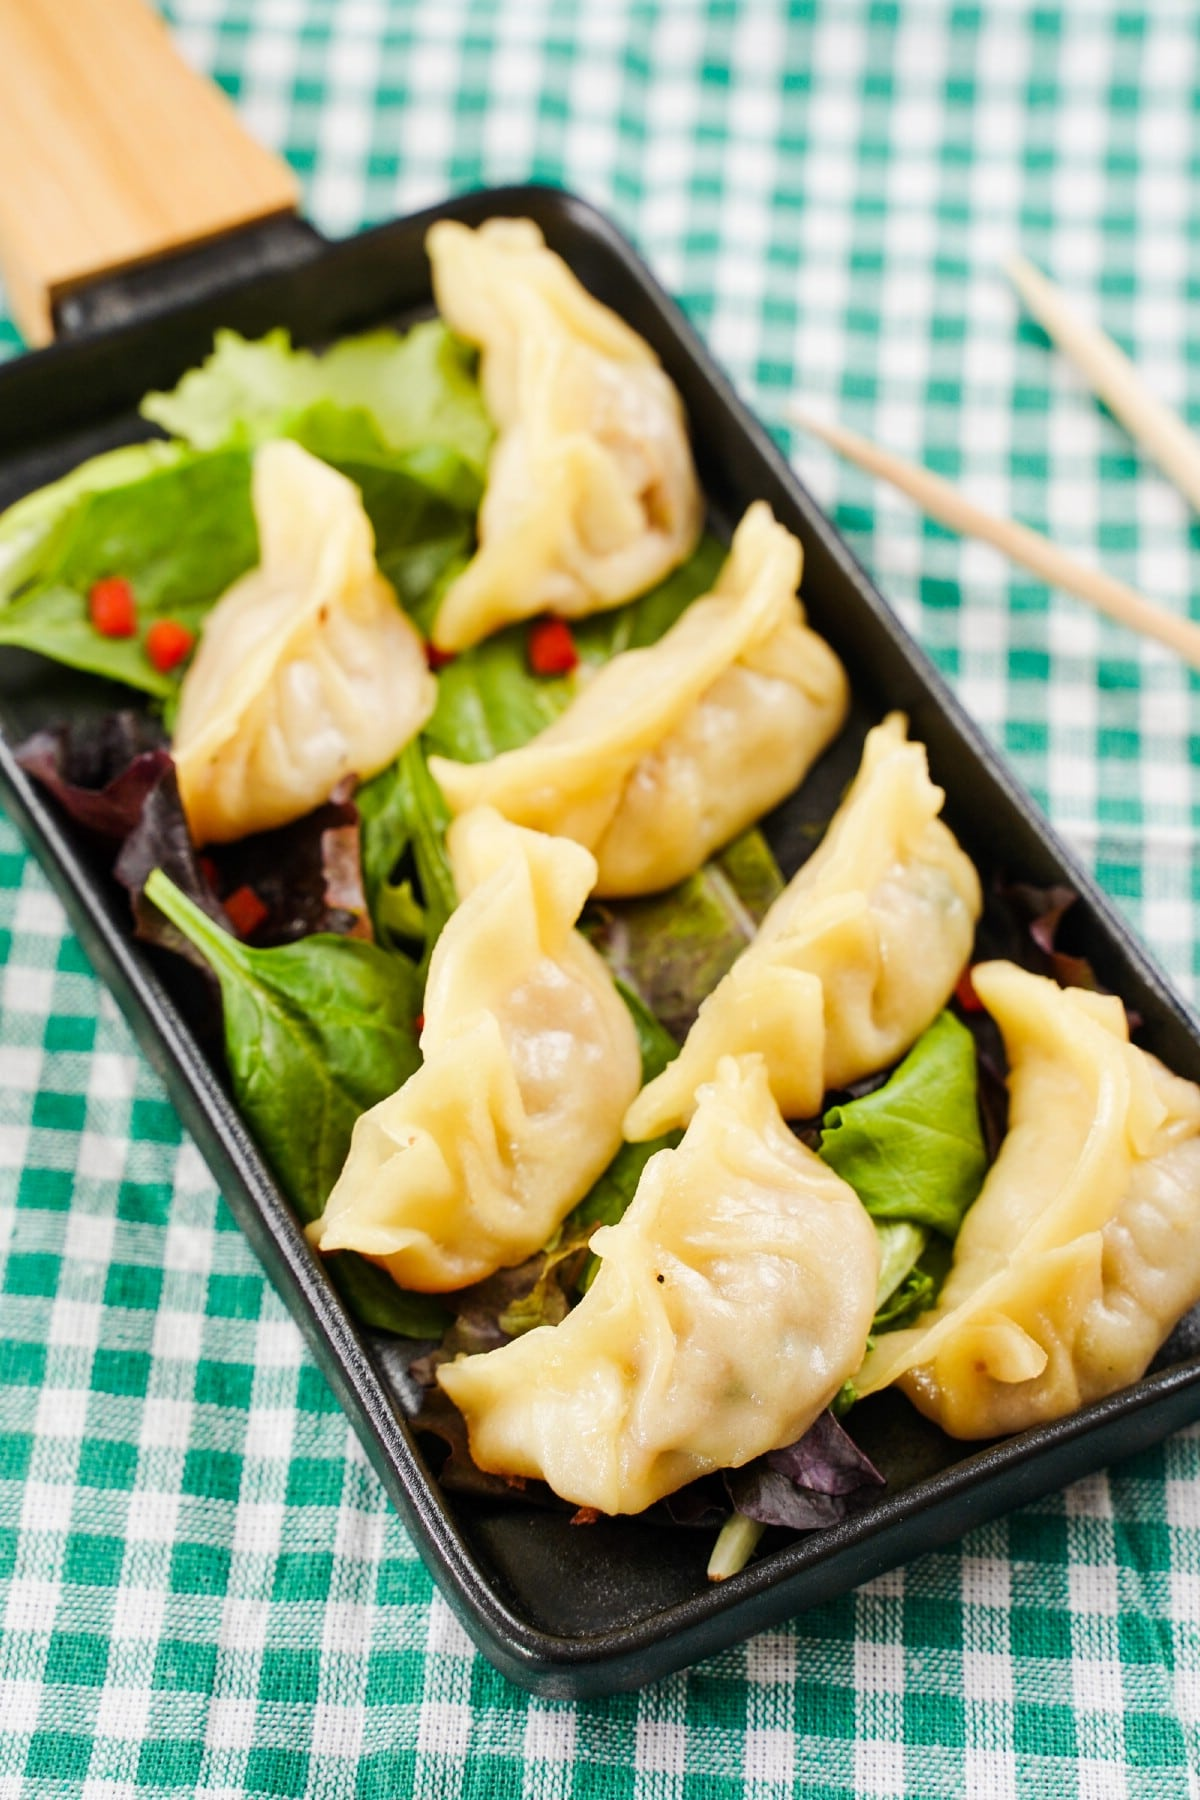 Long black tray of dumplings on green and white tablecloth